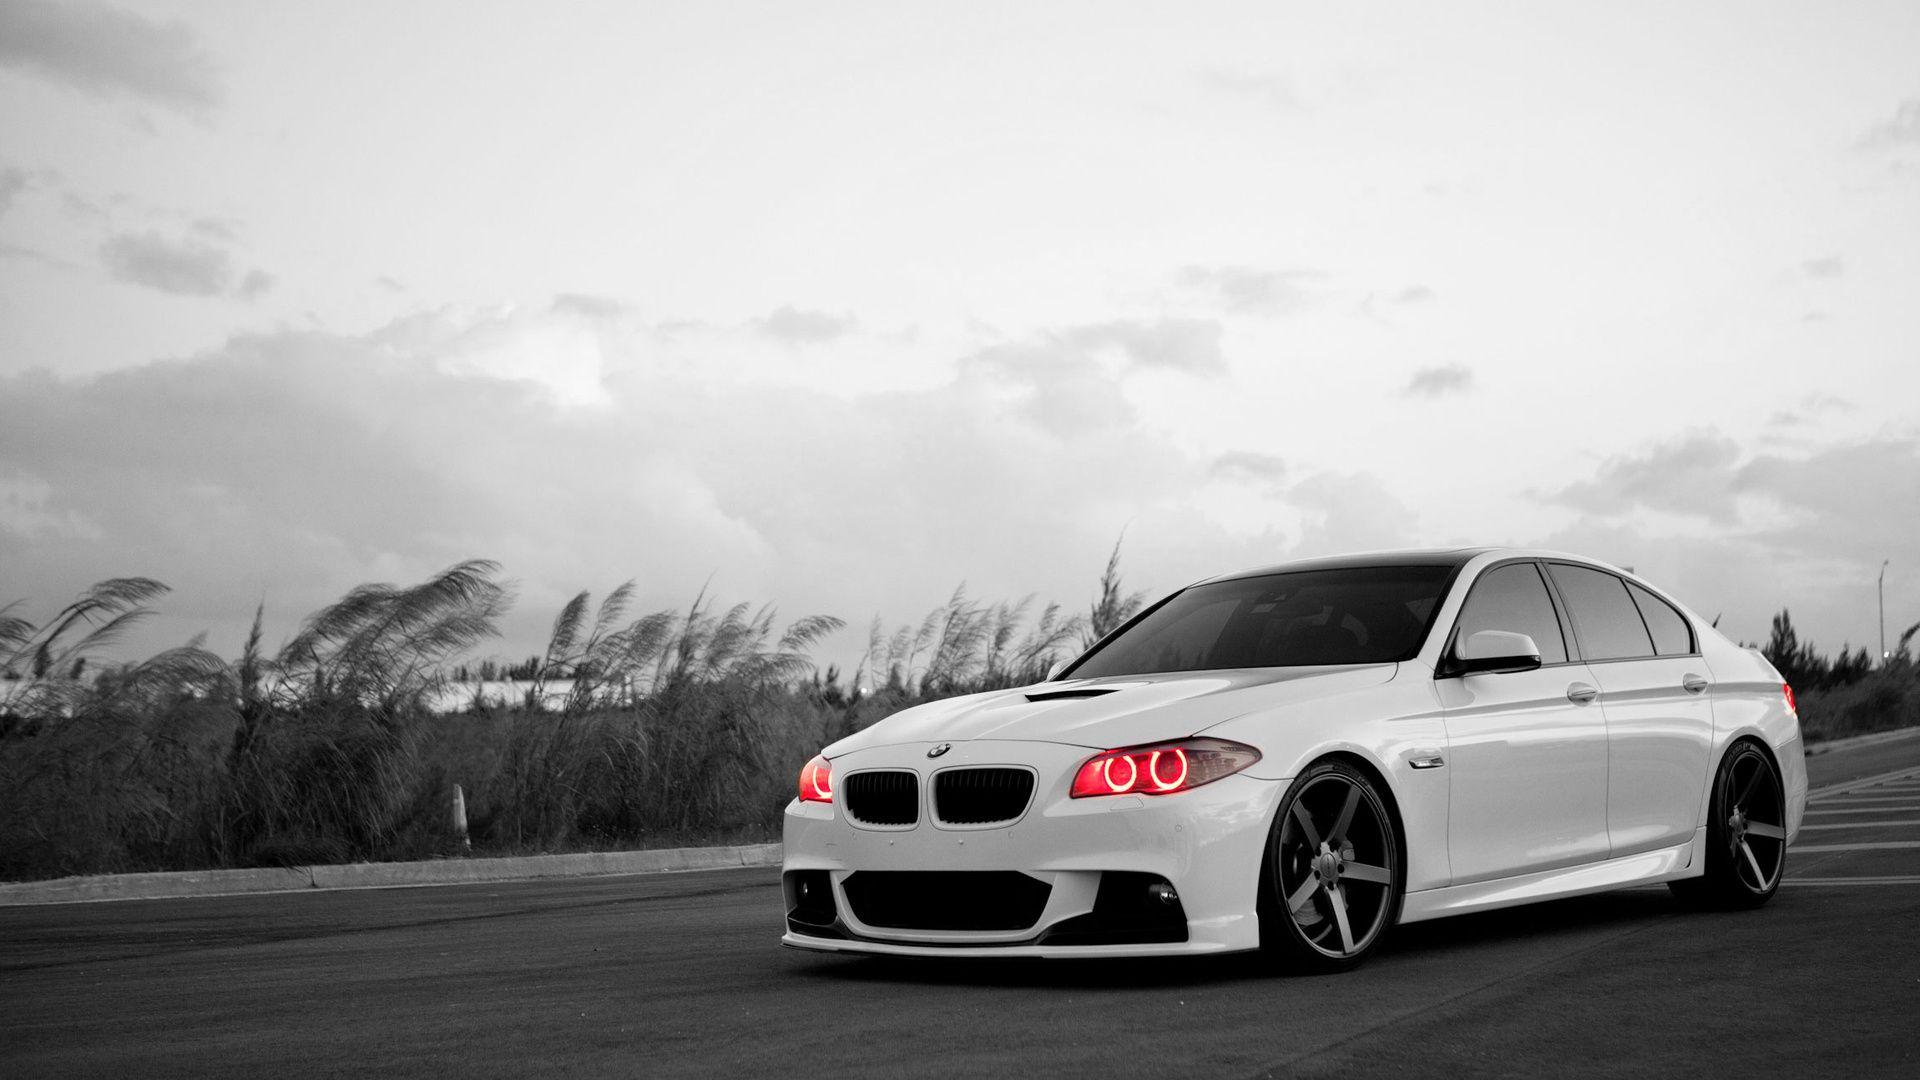 wallpaper wiki-Free-Bmw-Backgrounds-HD-Download-PIC